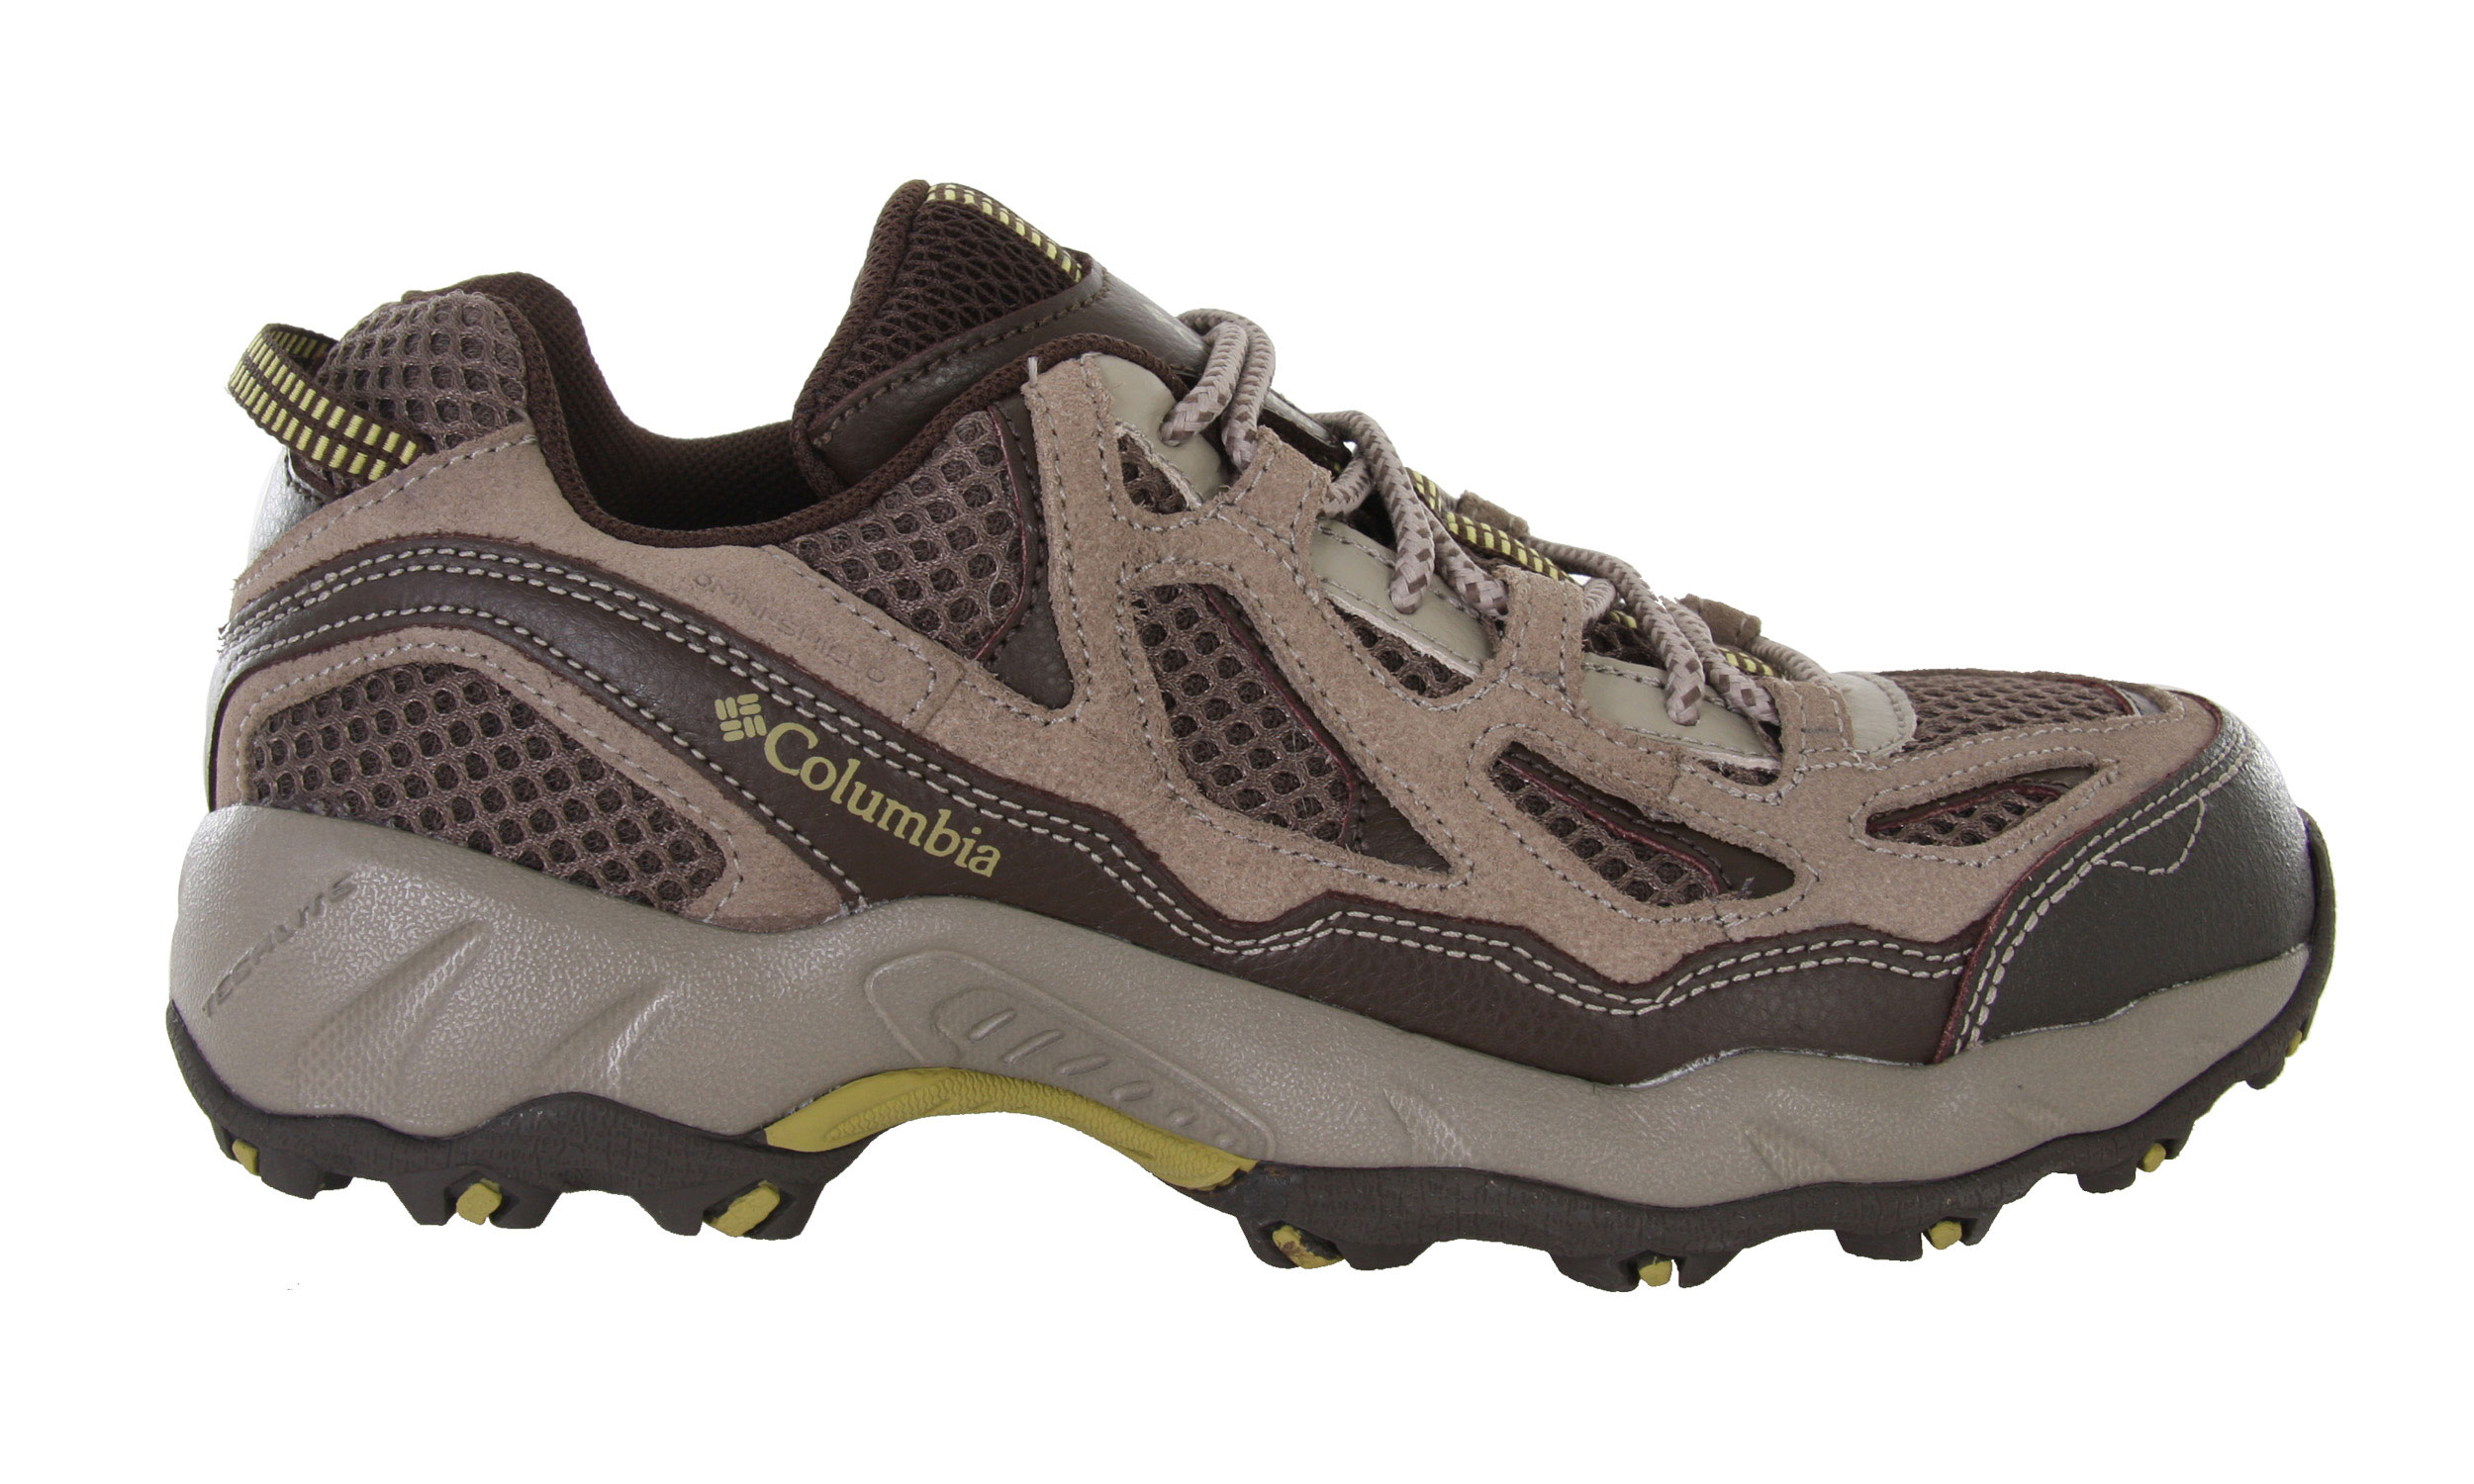 Camp and Hike This multi-sport performer is built for all-day wear on any trail, thanks to its Techlite[tm] molded midsole that delivers unprecedented lightweight comfort.With an upper constructed from coated leather, suede and breathable air mesh, your feet will feel supported and comfortable well after your legs start wearing out. Omni-Shield advanced repellency is a protective barrier against moisture and stains, while a gusseted tongue keeps debris from entering the shoe. A removable Contour Comfort footbed with AgION anti-odor treatment delivers custom cushioning and a nylon shank provides rigidity and support when hiking and scrambling. Sure footing on rocky, uneven surfaces is facilitated by Omni-Grip rubber outsoles with a trail-specific lug pattern. Key Features of the Columbia Dogwood Hiking Shoes: Coated leather and suede upper with breathable air mesh Omni-Shield advanced repellency for water and stain protection Gusseted tongue to prevent debris from entering shoe Scratch rubber toecap for abrasion resistance Contour Comfort footbed with AgION anti-odor treatment Techlite molded midsole for lightweight cushioning and comfort Nylon shank provides rigidity and support Lightweight non-marking Omni-Grip outsole with a rugged trail design Female-specific last Weight: 11.2oz/315g (One shoe; size 7) - $41.95